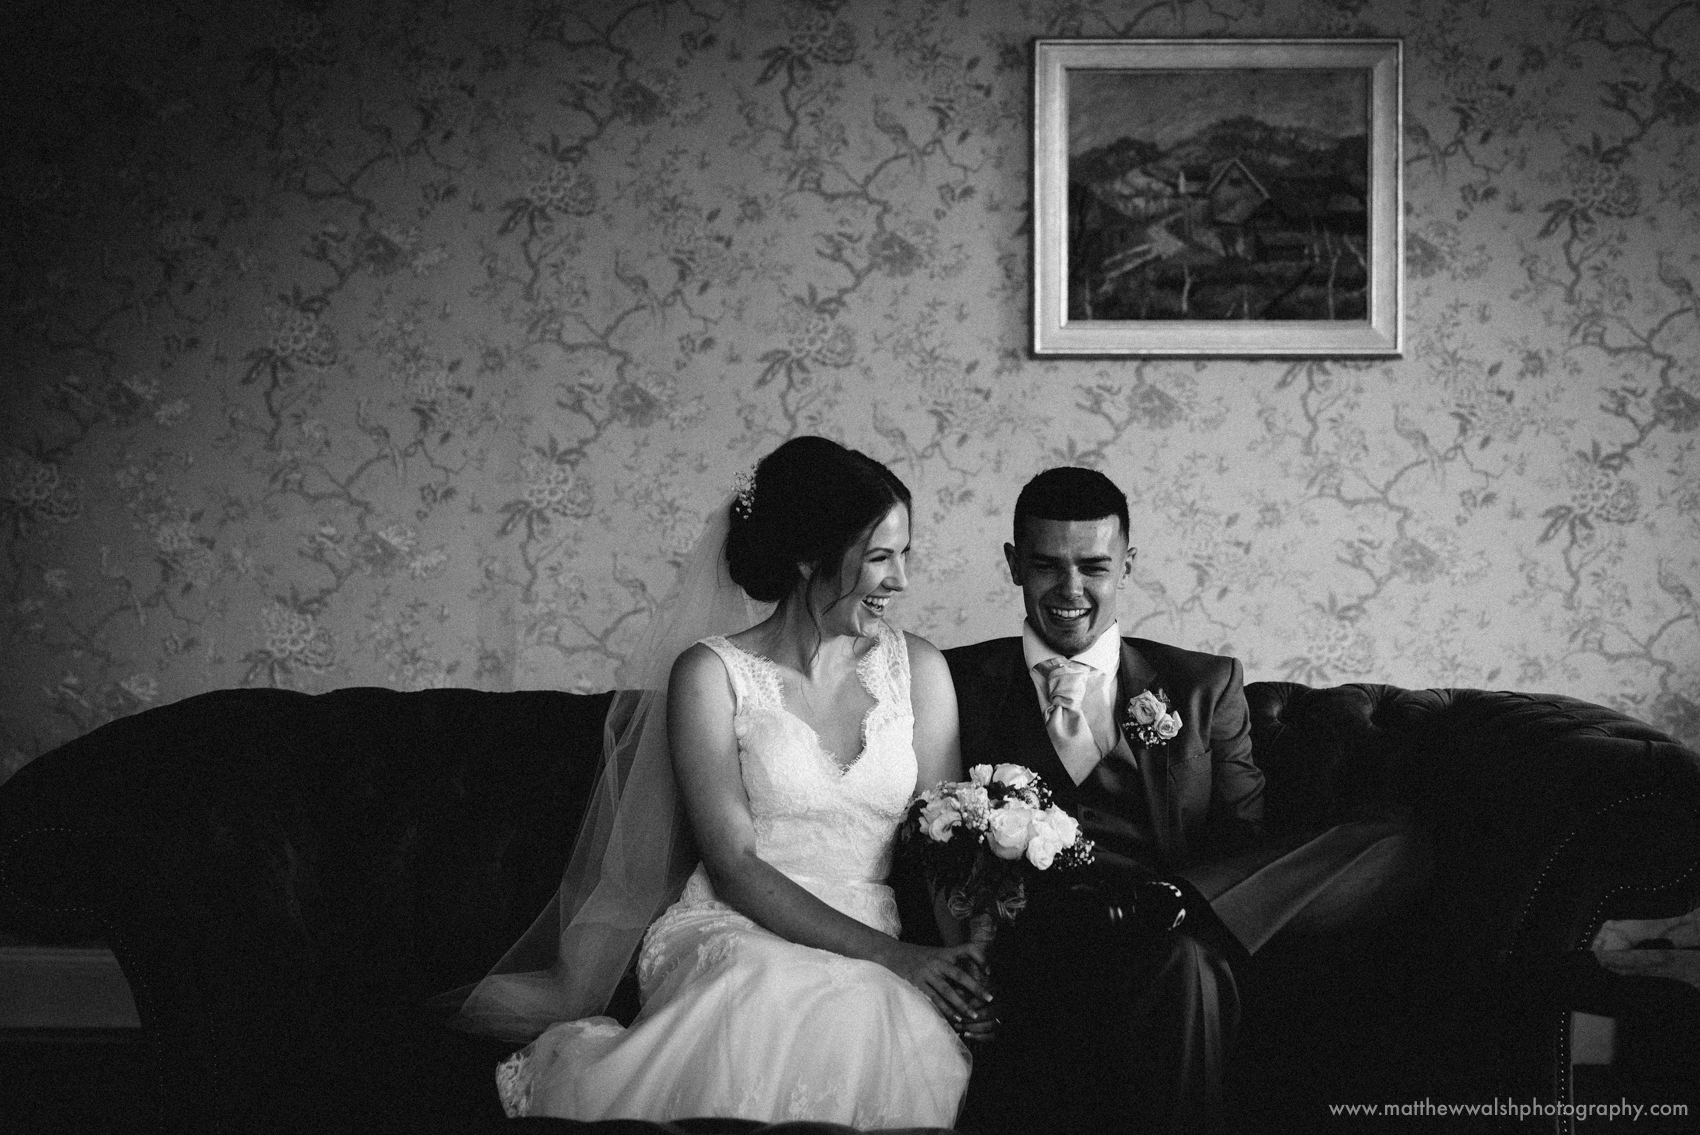 The bride and groom sat together on a couch in the games room of the venue, the natural window light creating a wonderful atmosphere